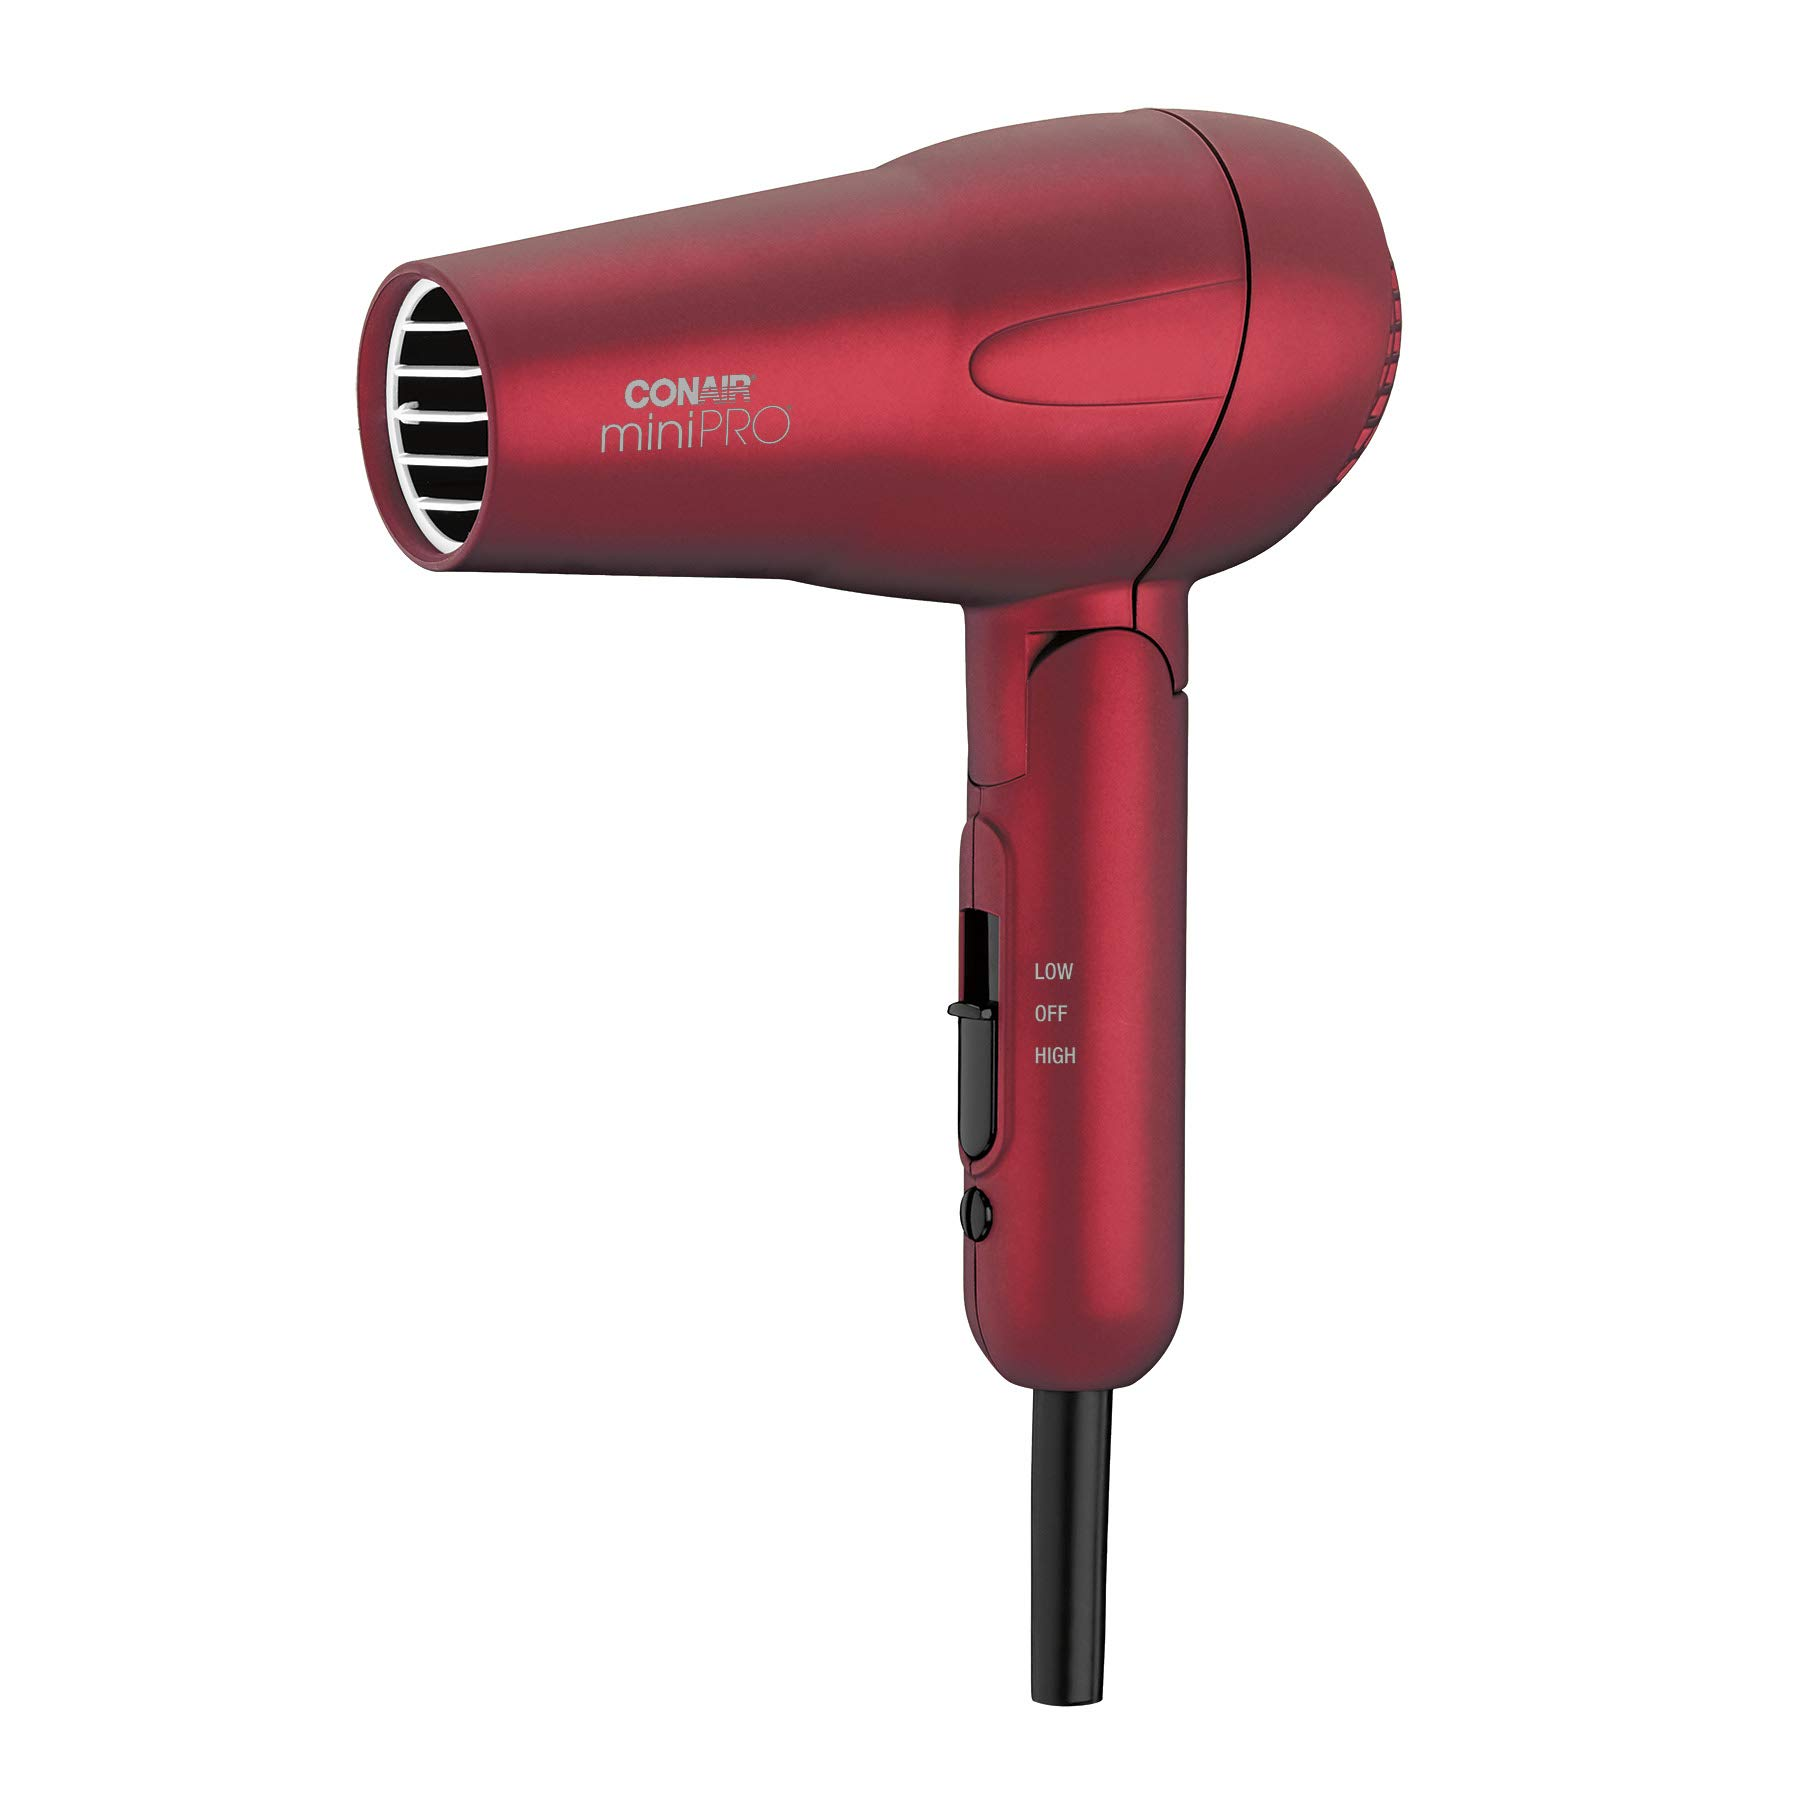 miniPRO Tourmaline Ceramic Travel Hair Dryer with Folding Handle, Red